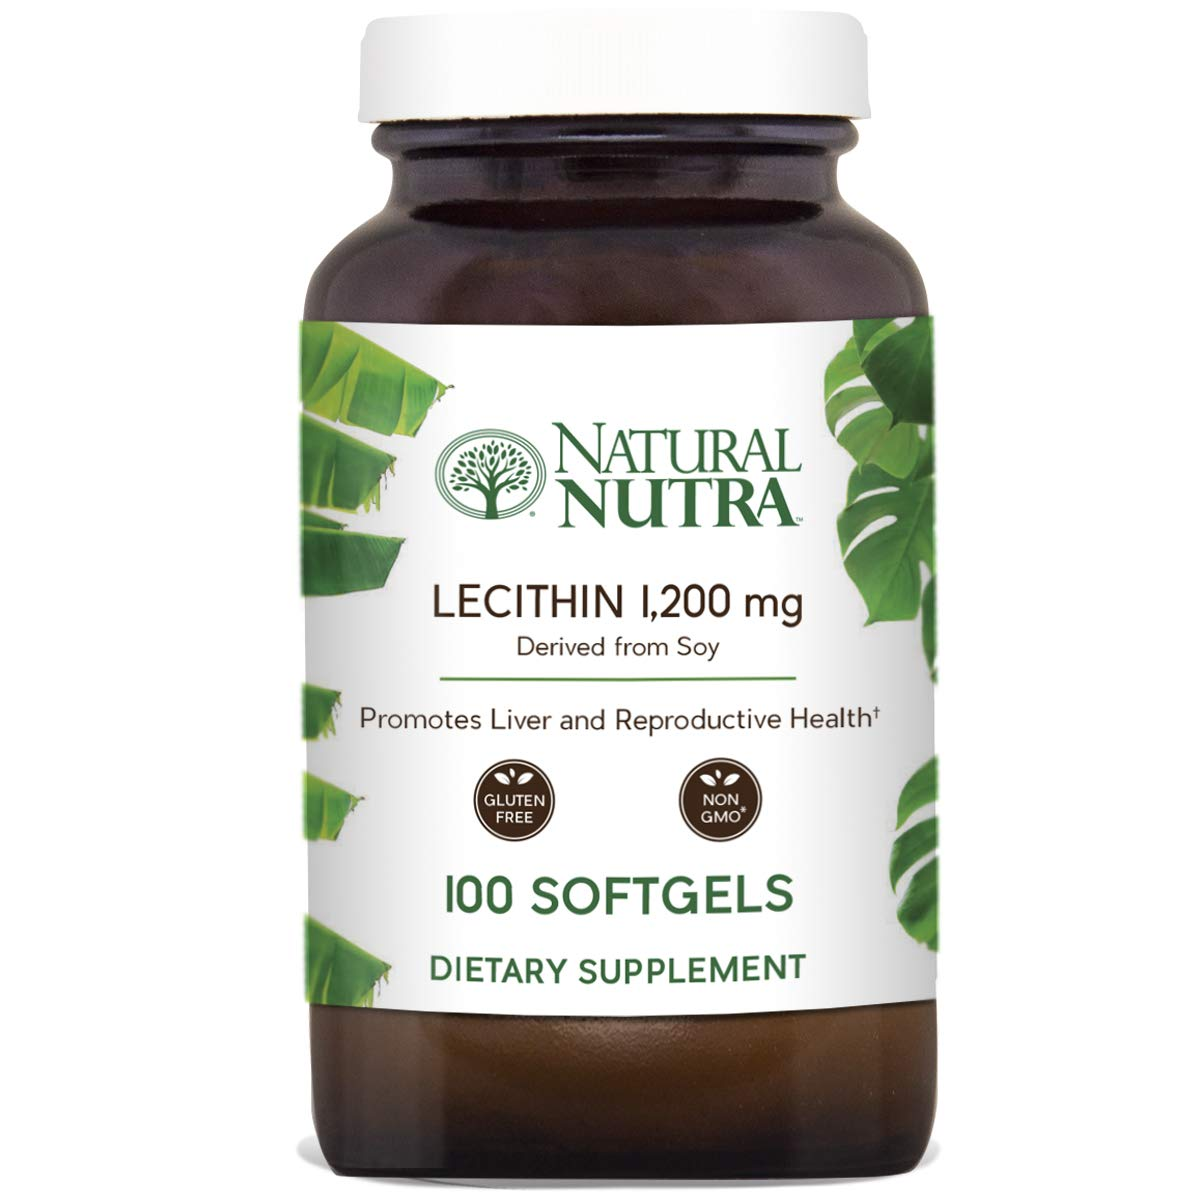 Natural Nutra Soy Lecithin Dietary Supplement from Soybean Oil, Non GMO, High Potency, 1200 mg, 100 Softgels by Natural Nutra